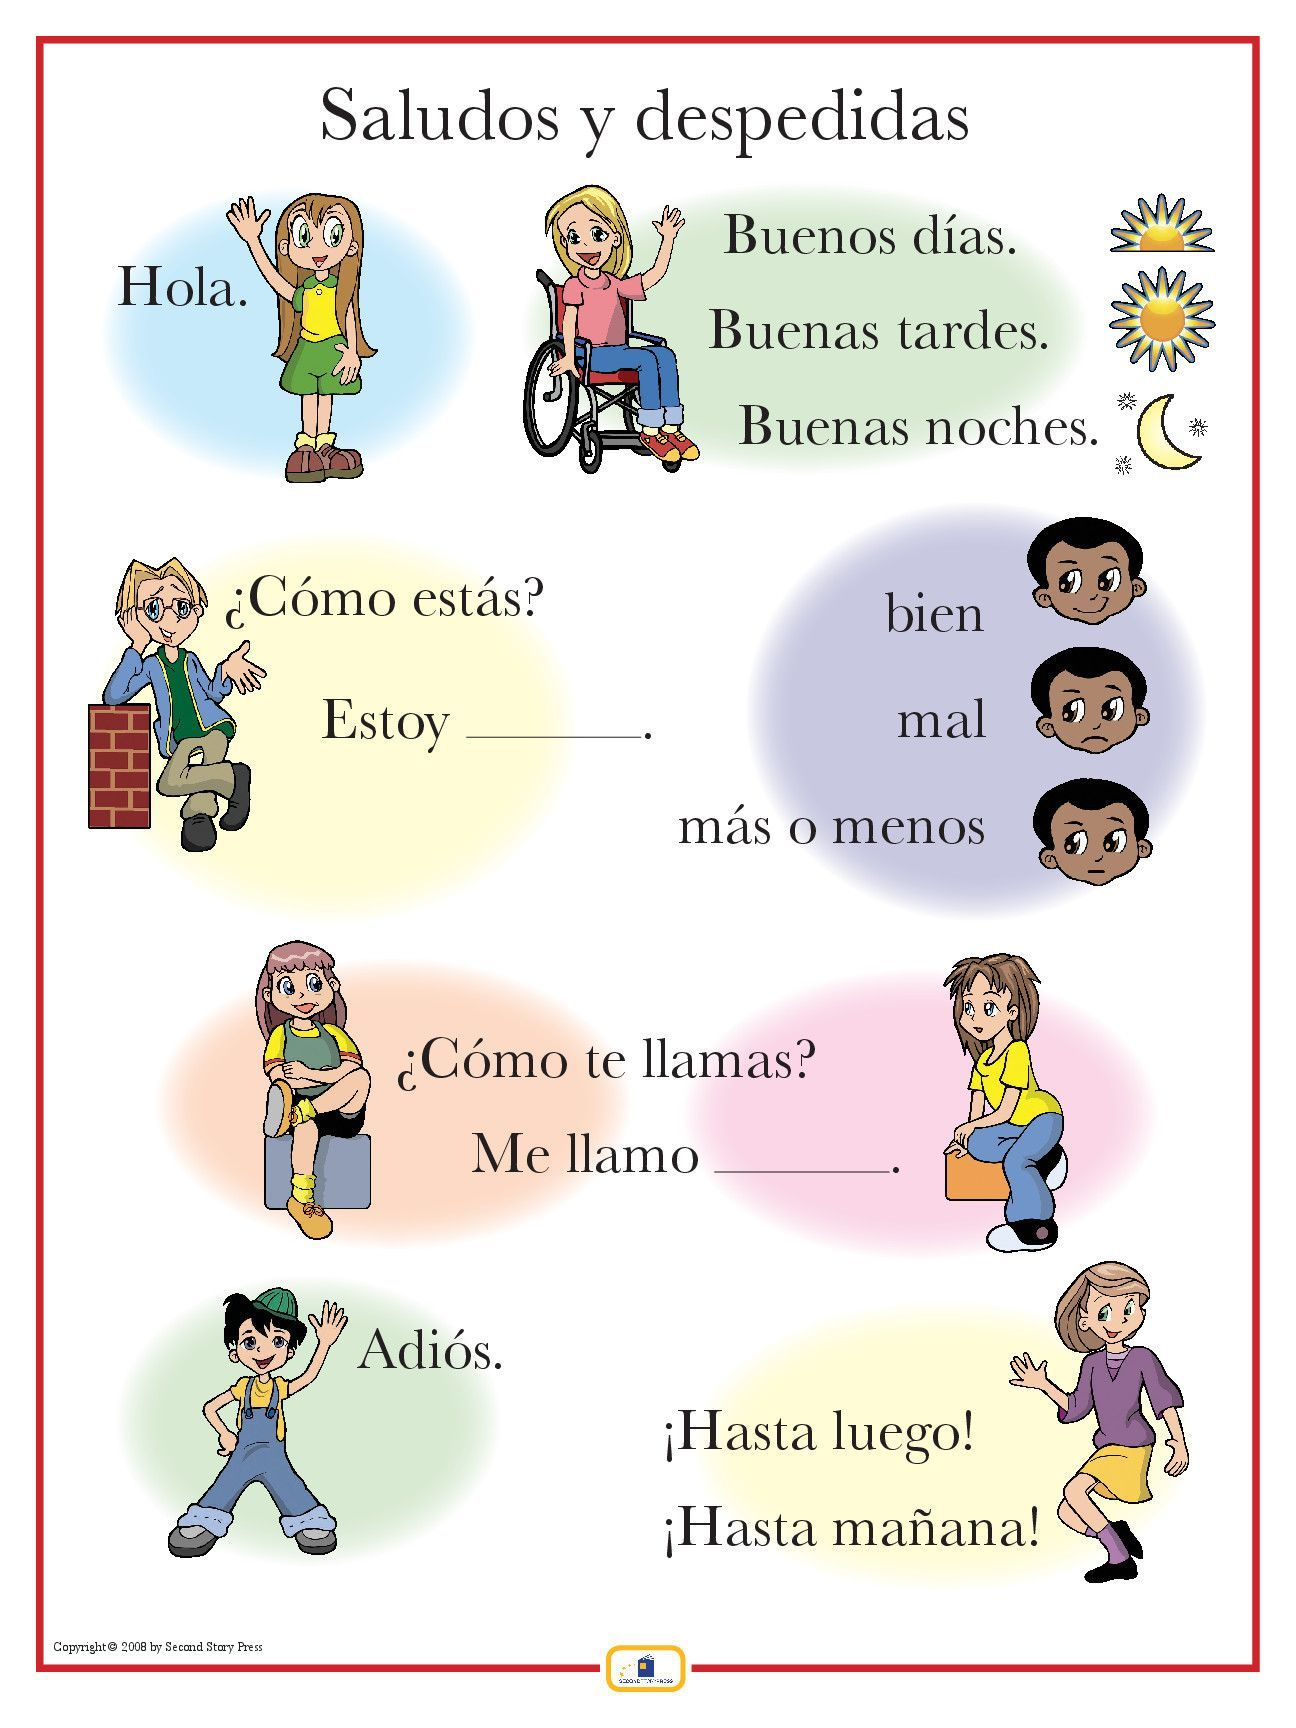 Spanish Greetings Poster Spanish Lessons For Kids Spanish Teaching Resources Learning Spanish